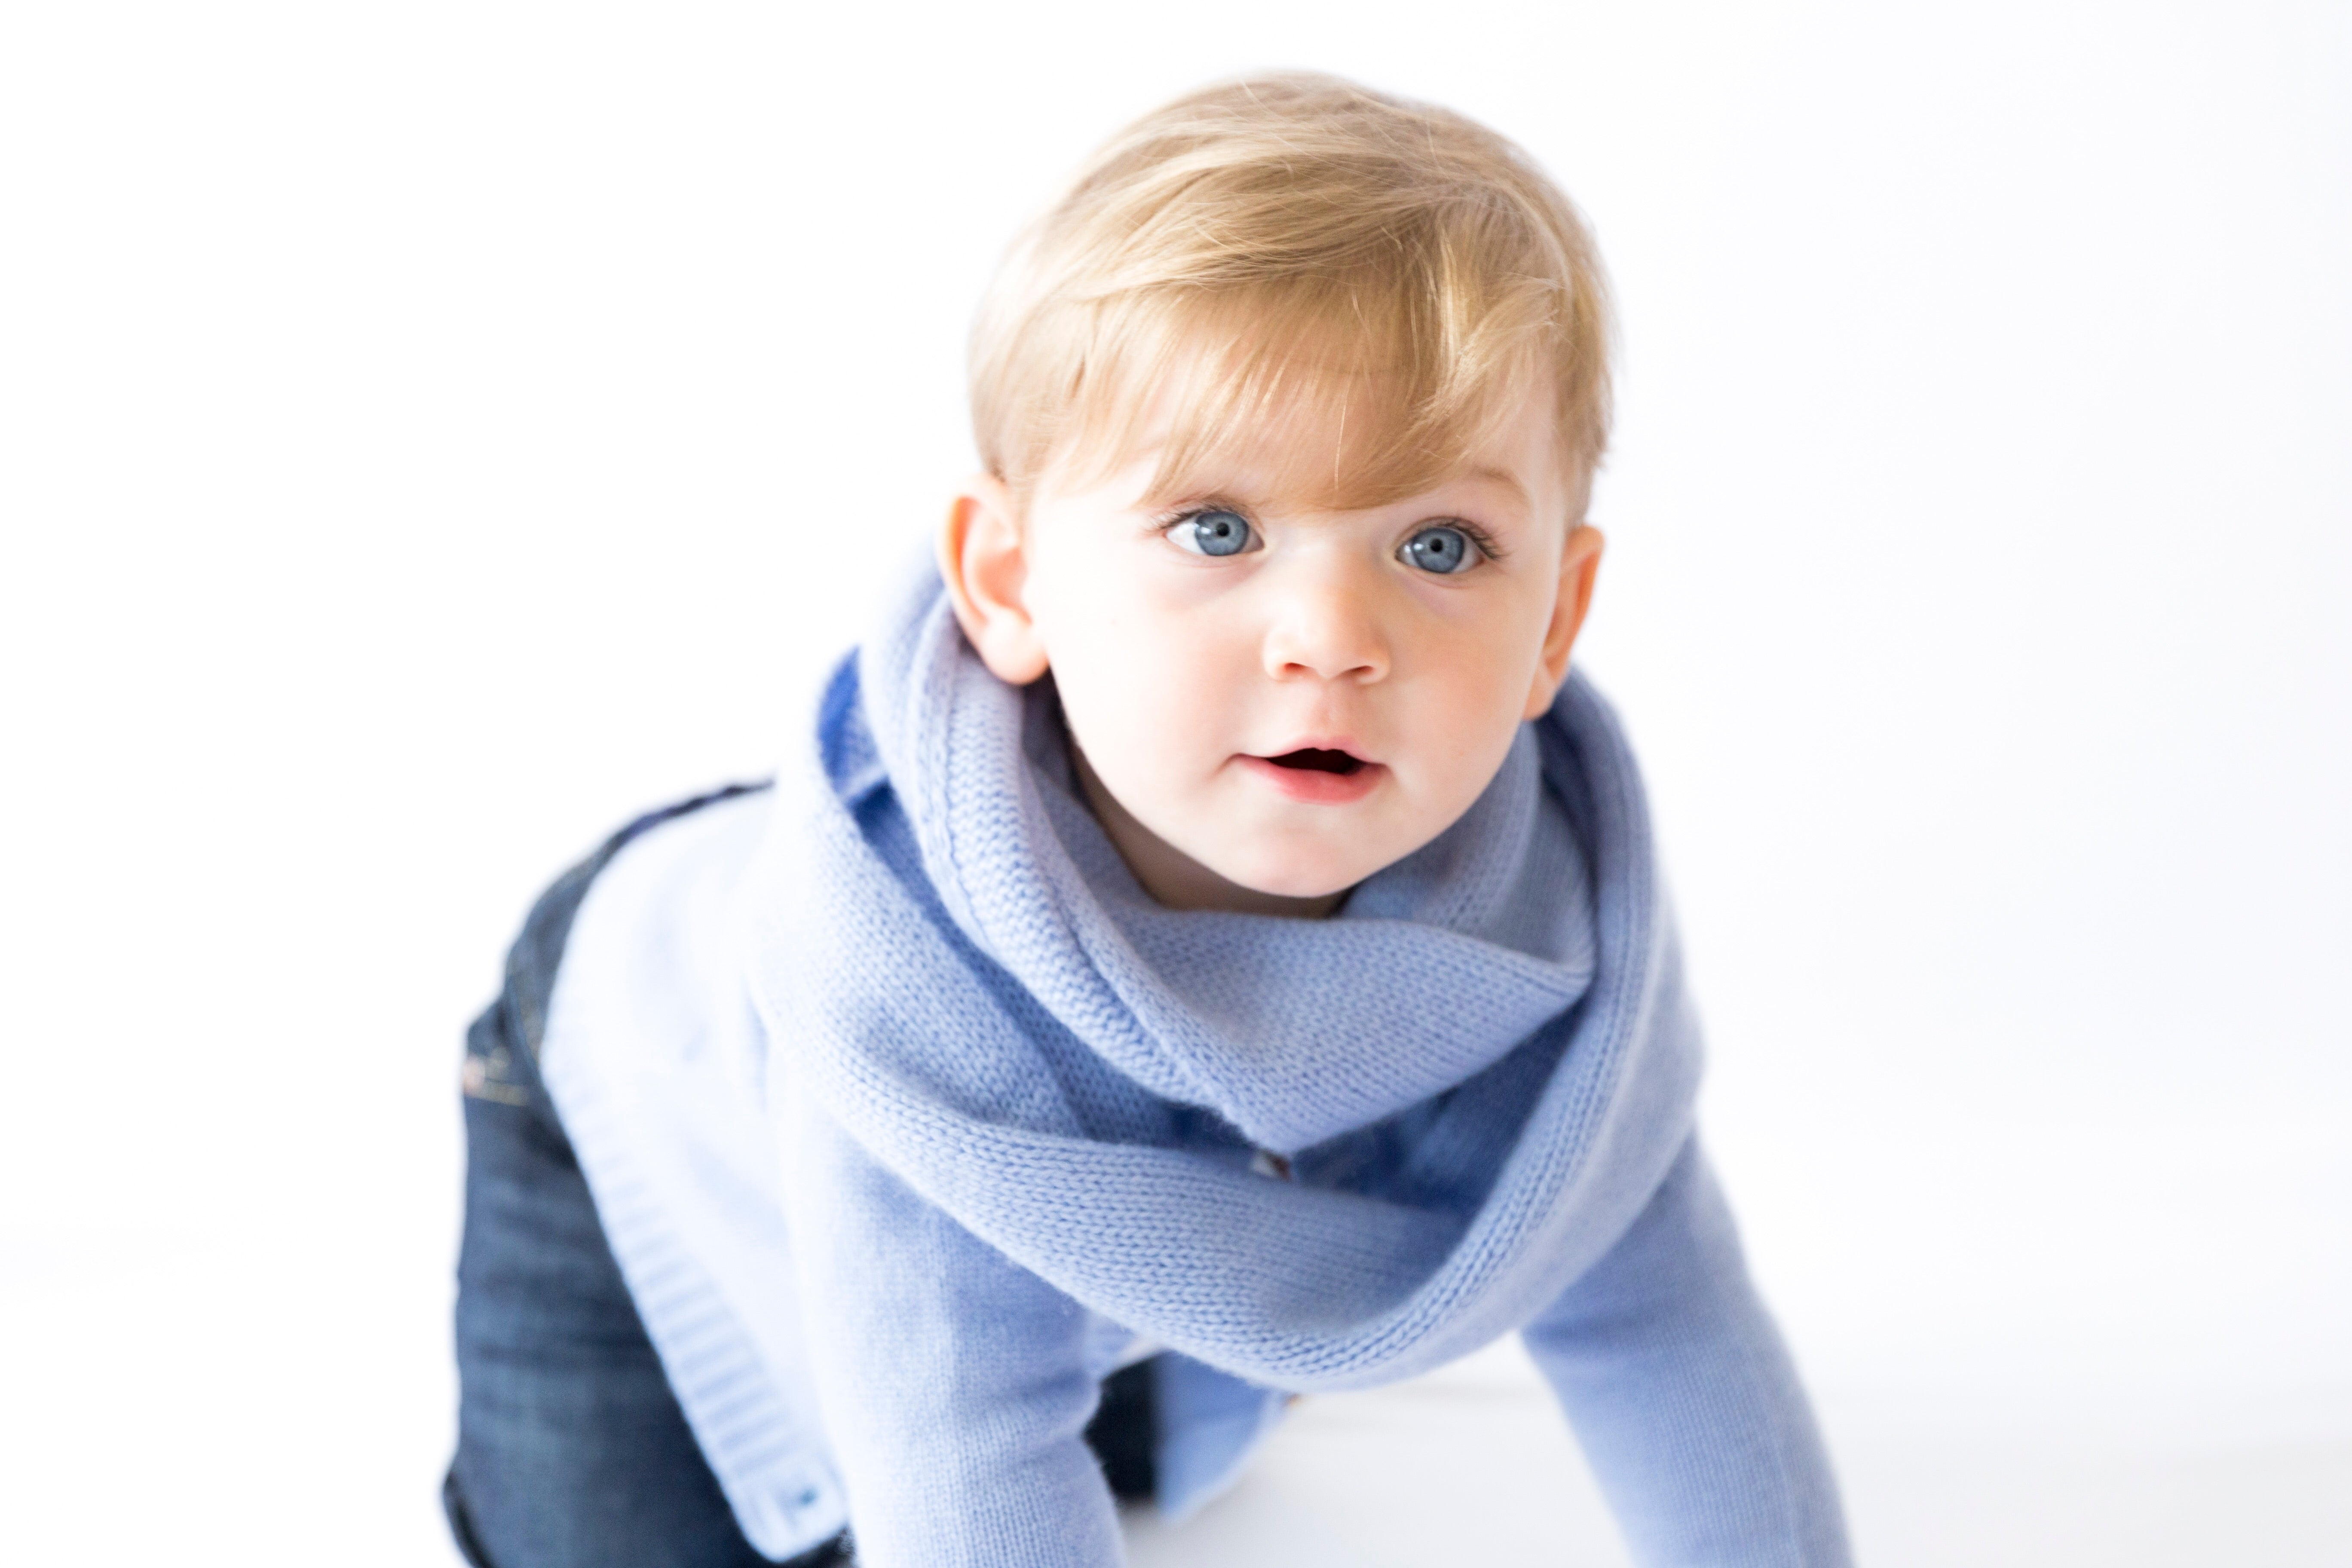 Pure Cashmere Infinity Scarf Toddler/Kids, 100% eco-friendly, 6-ply - MINIMAINS